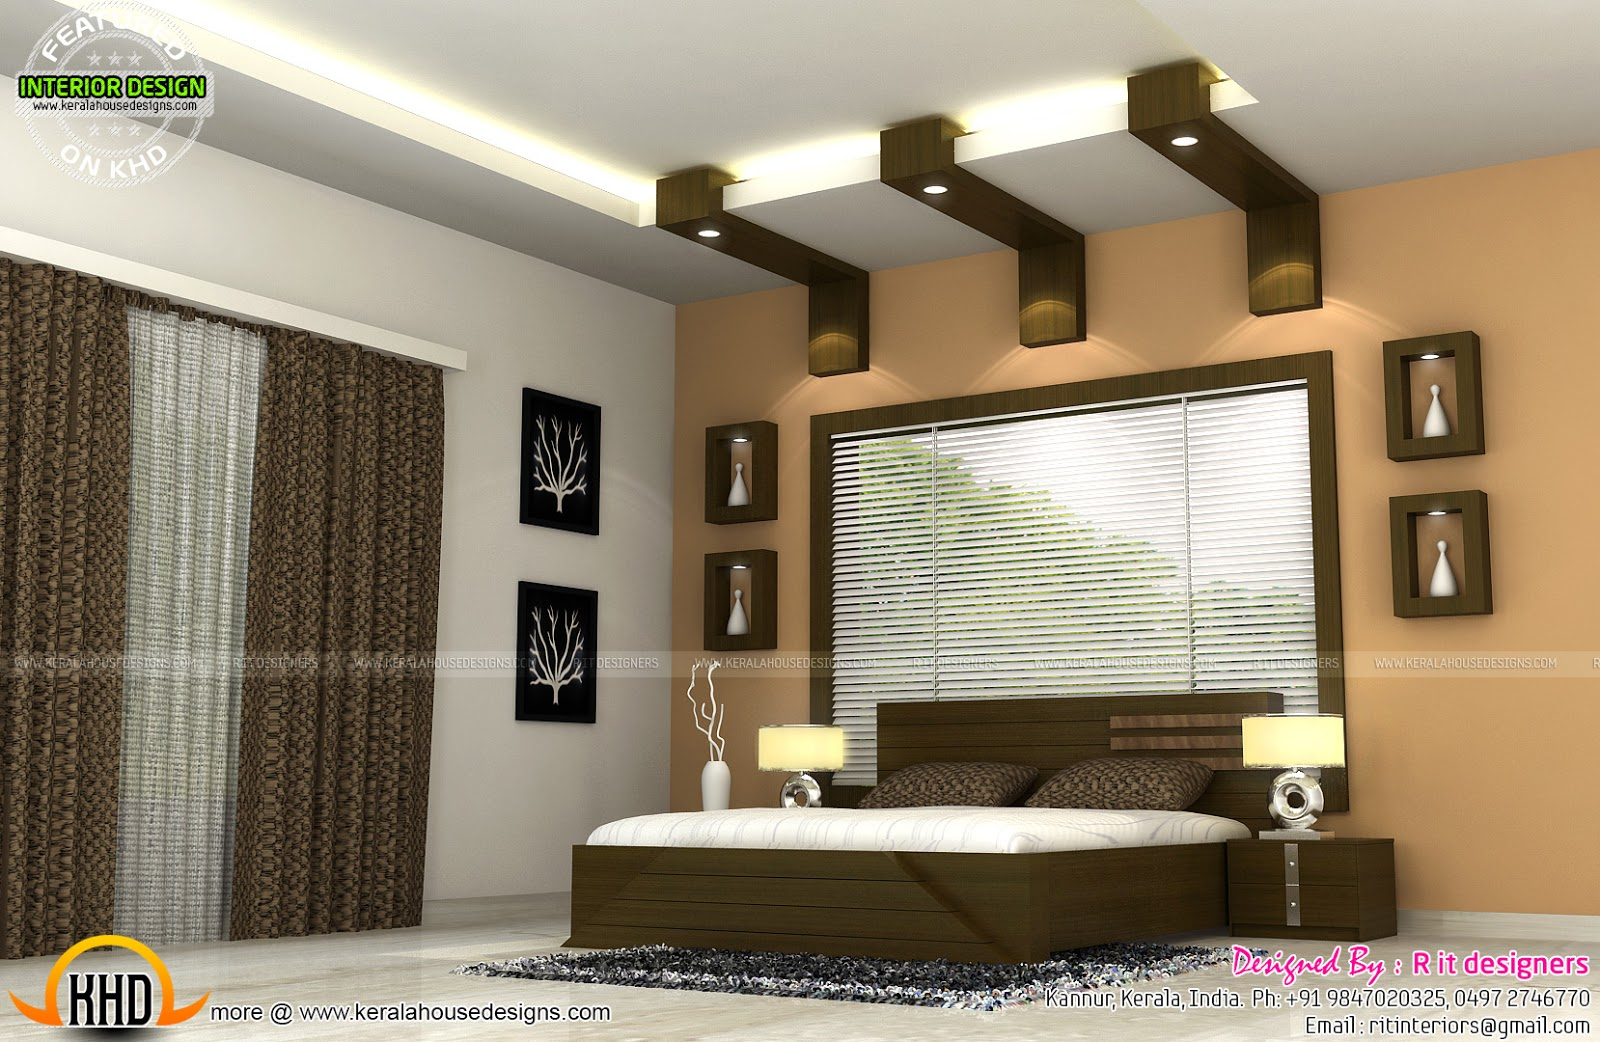 Interiors of bedrooms and kitchen kerala home design and floor plans - Interior bedroom design ...